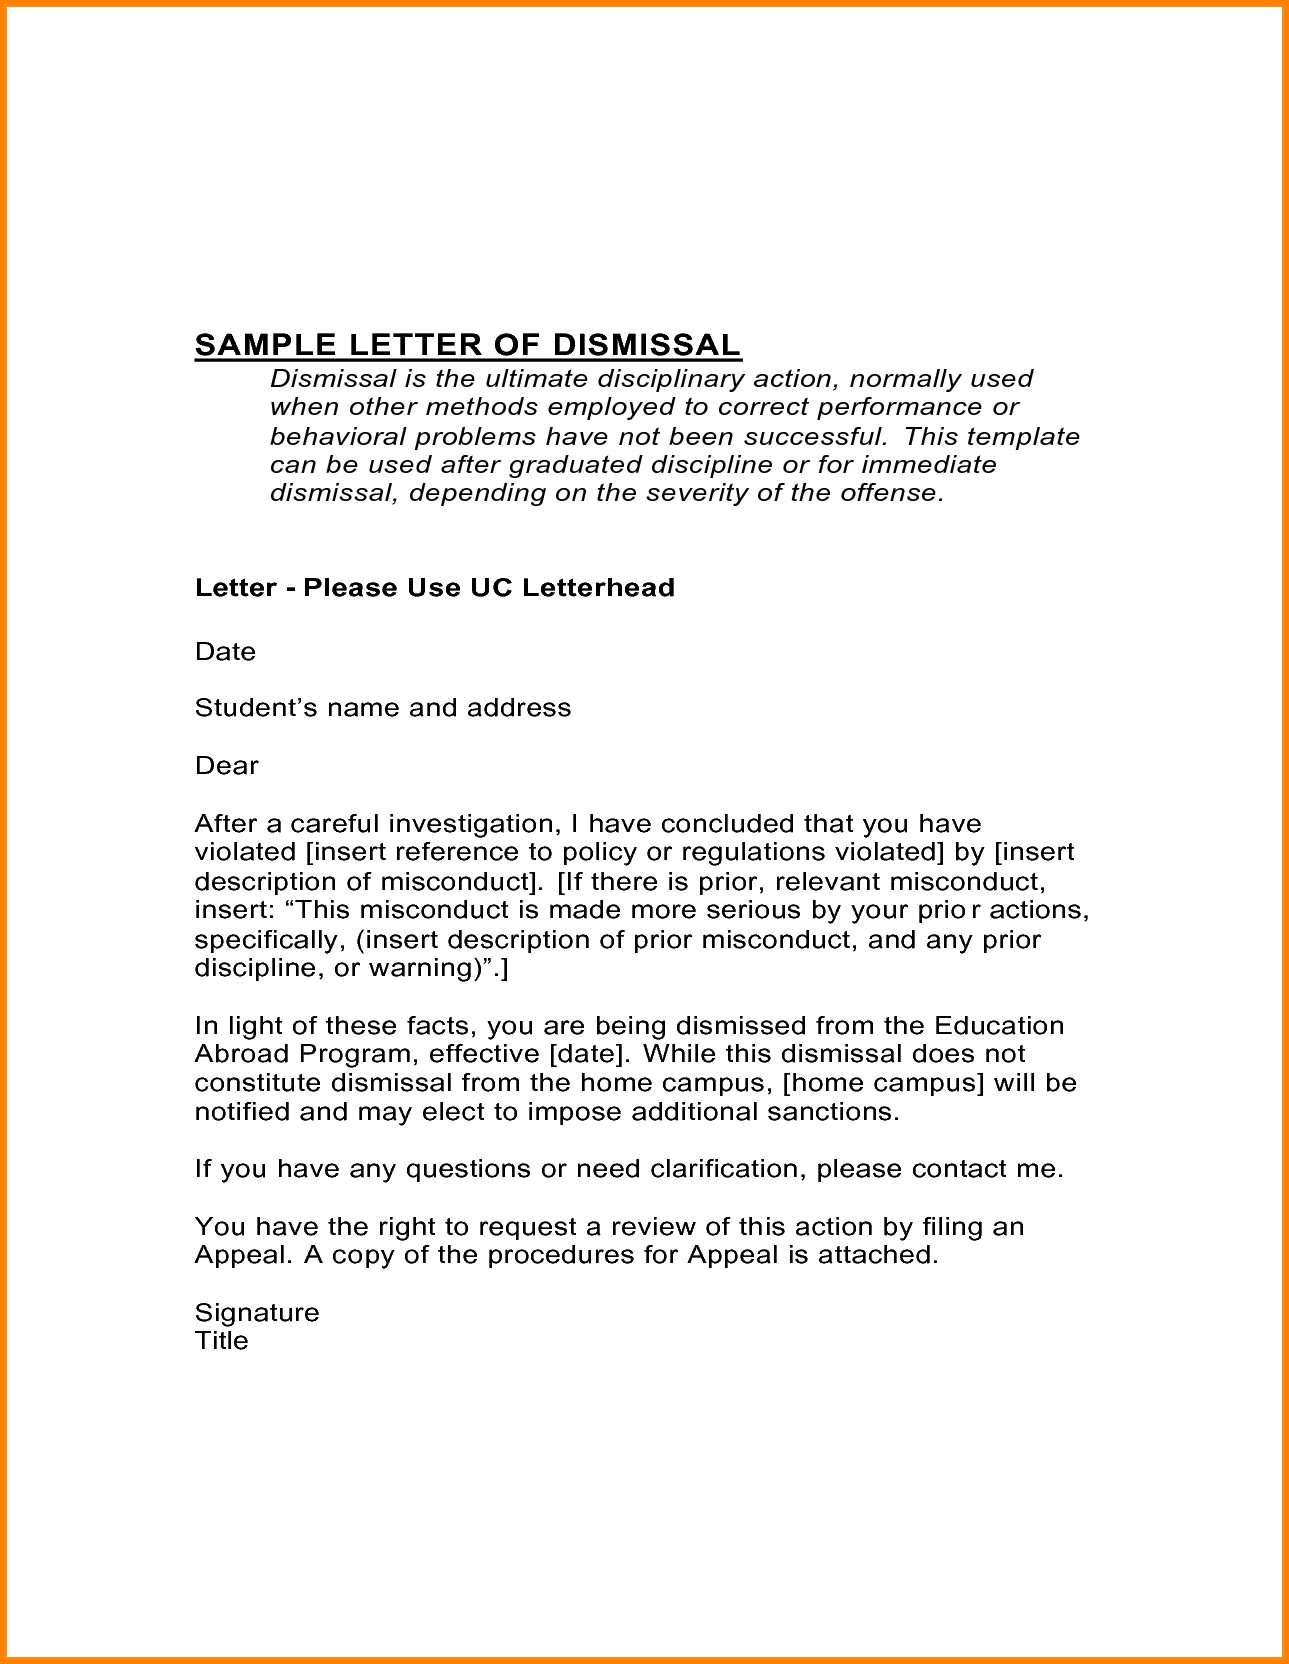 Patient Dismissal Letter for Behavior Template - format for Appeal Letter to University Best 9 Dismissal Appeal